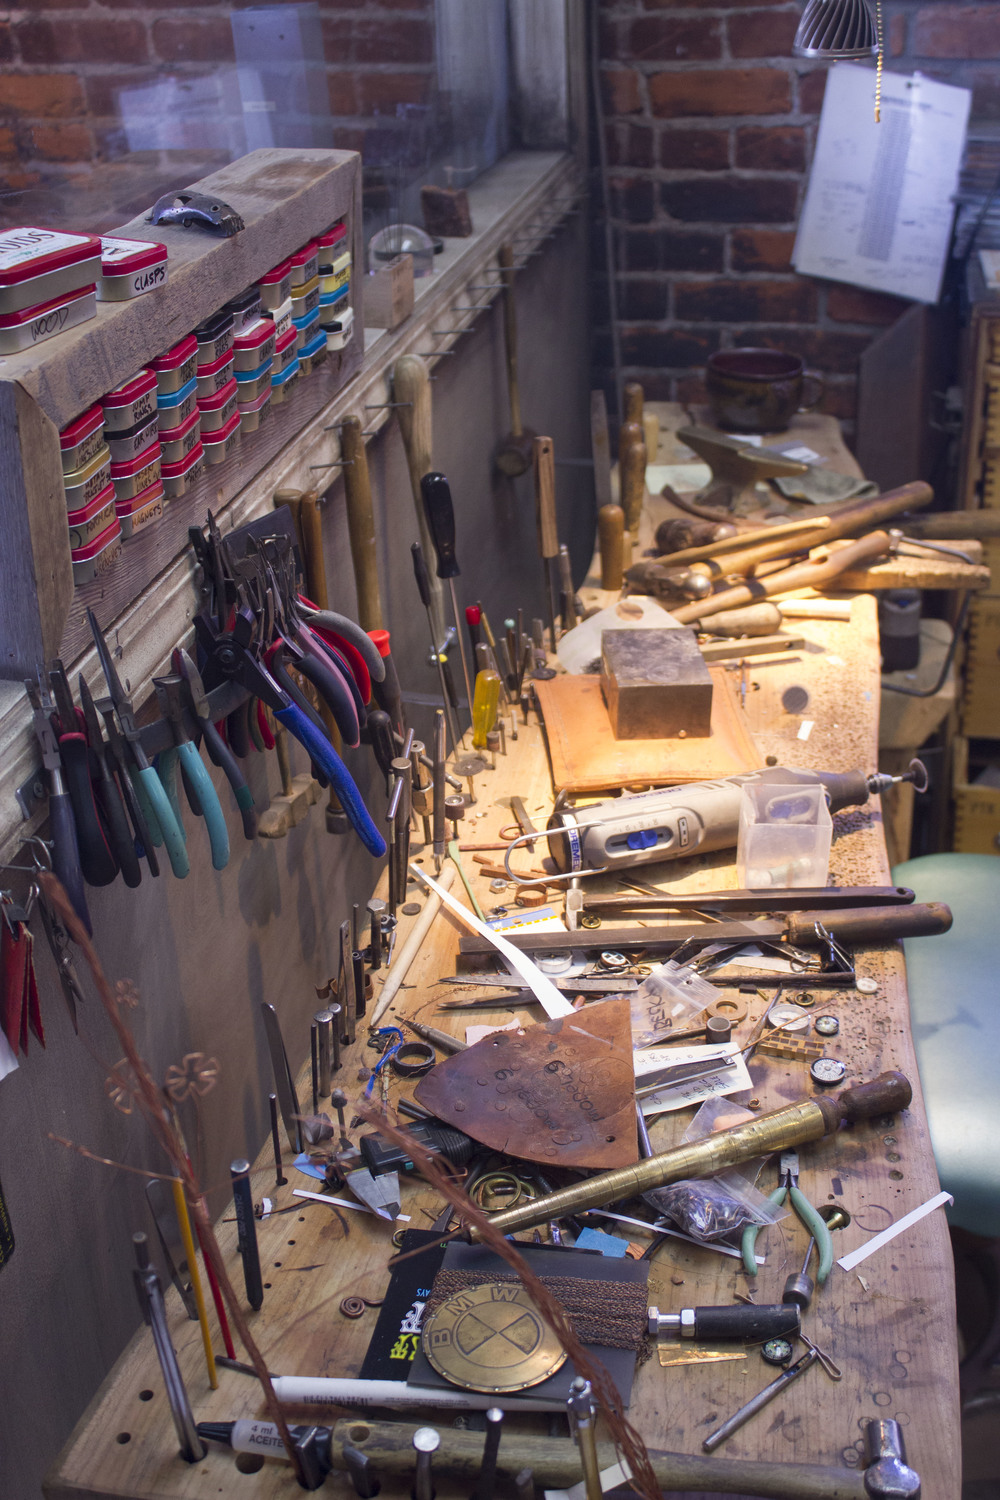 stuarts workbench.jpg